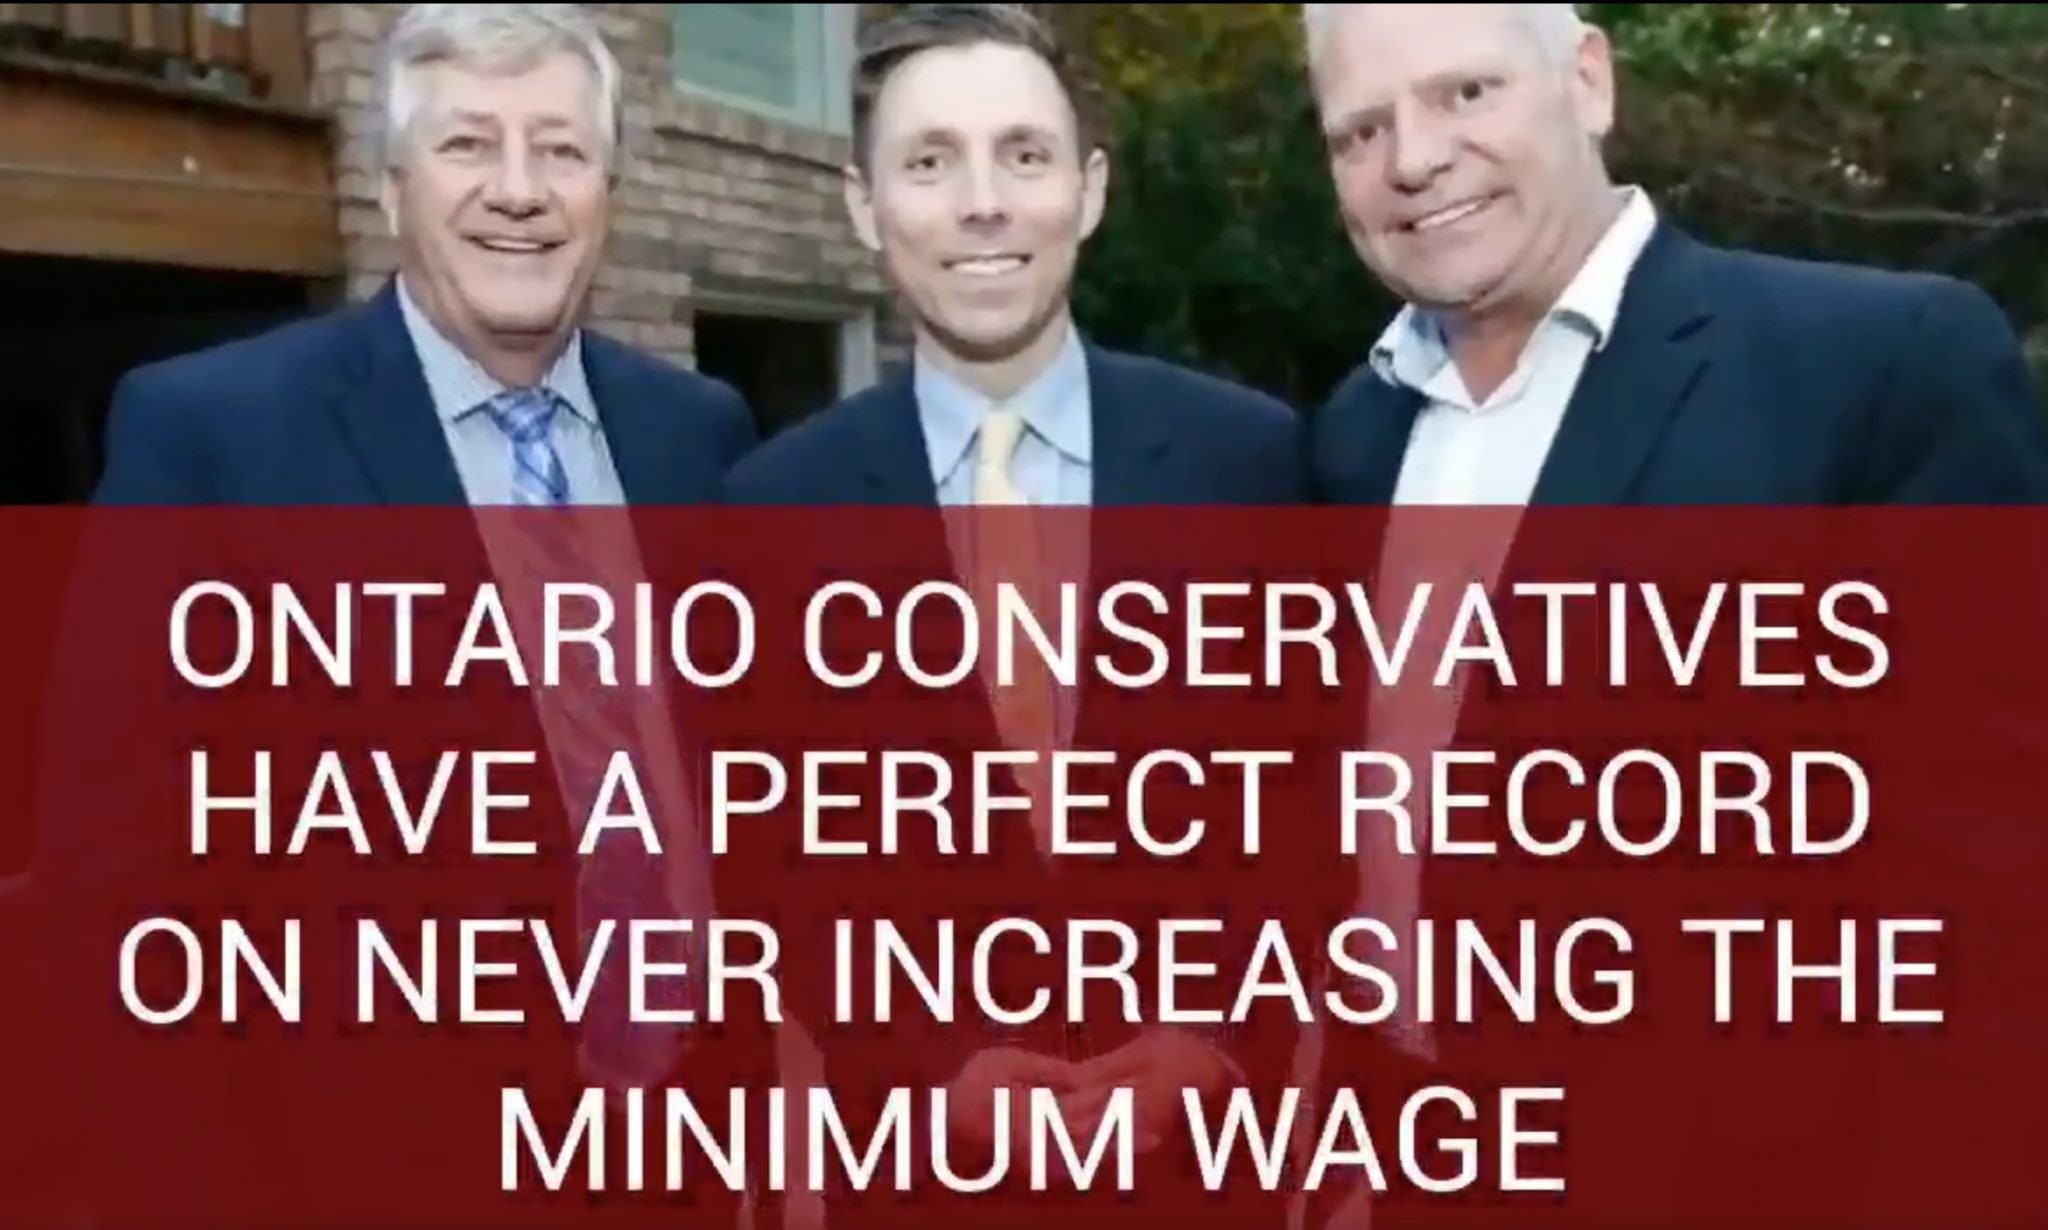 We fact-checked the Liberals' anti-PC minimum-wage ad